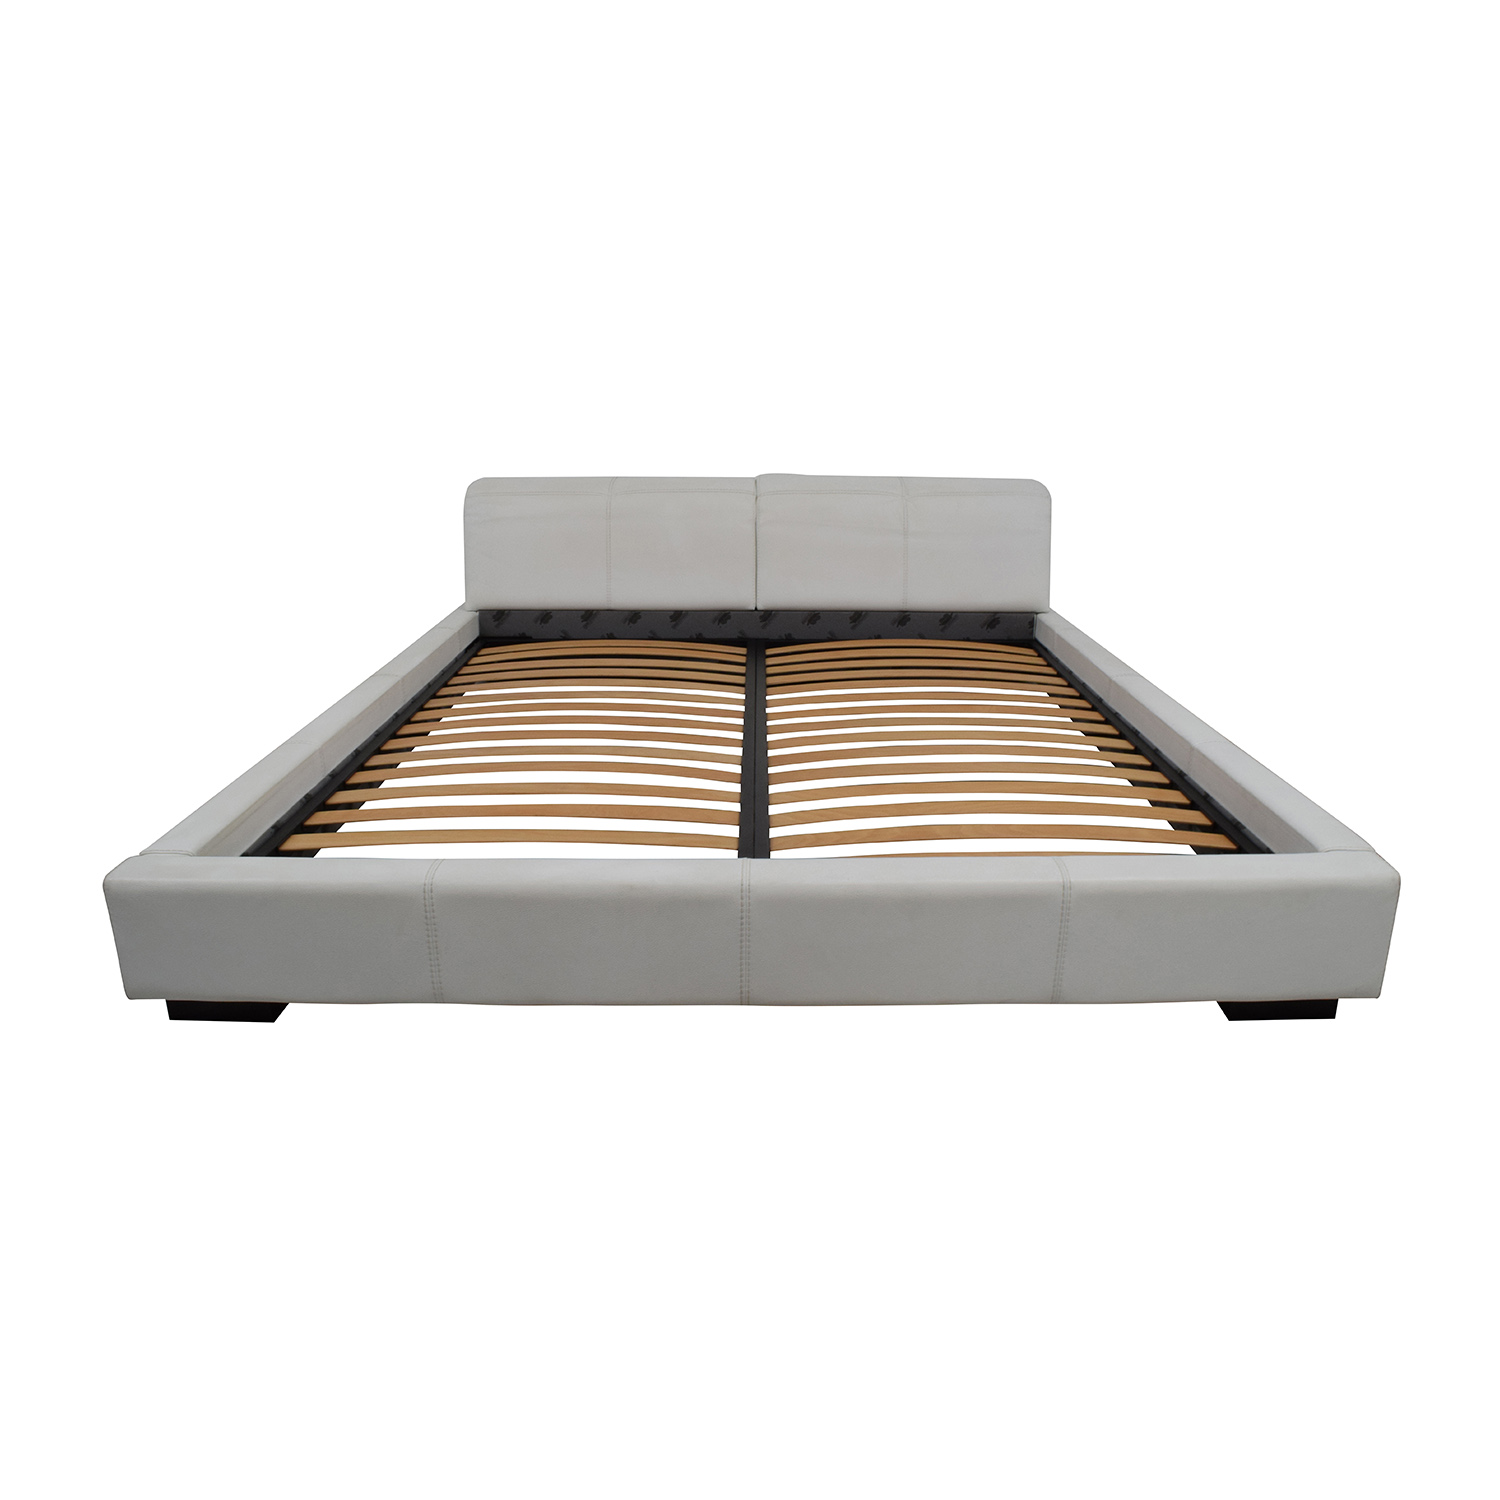 off  stanley furniture stanley furniture isabella cameo white  - buy paramount gamma arredamenti modern leather platform king bed paramountbed frames